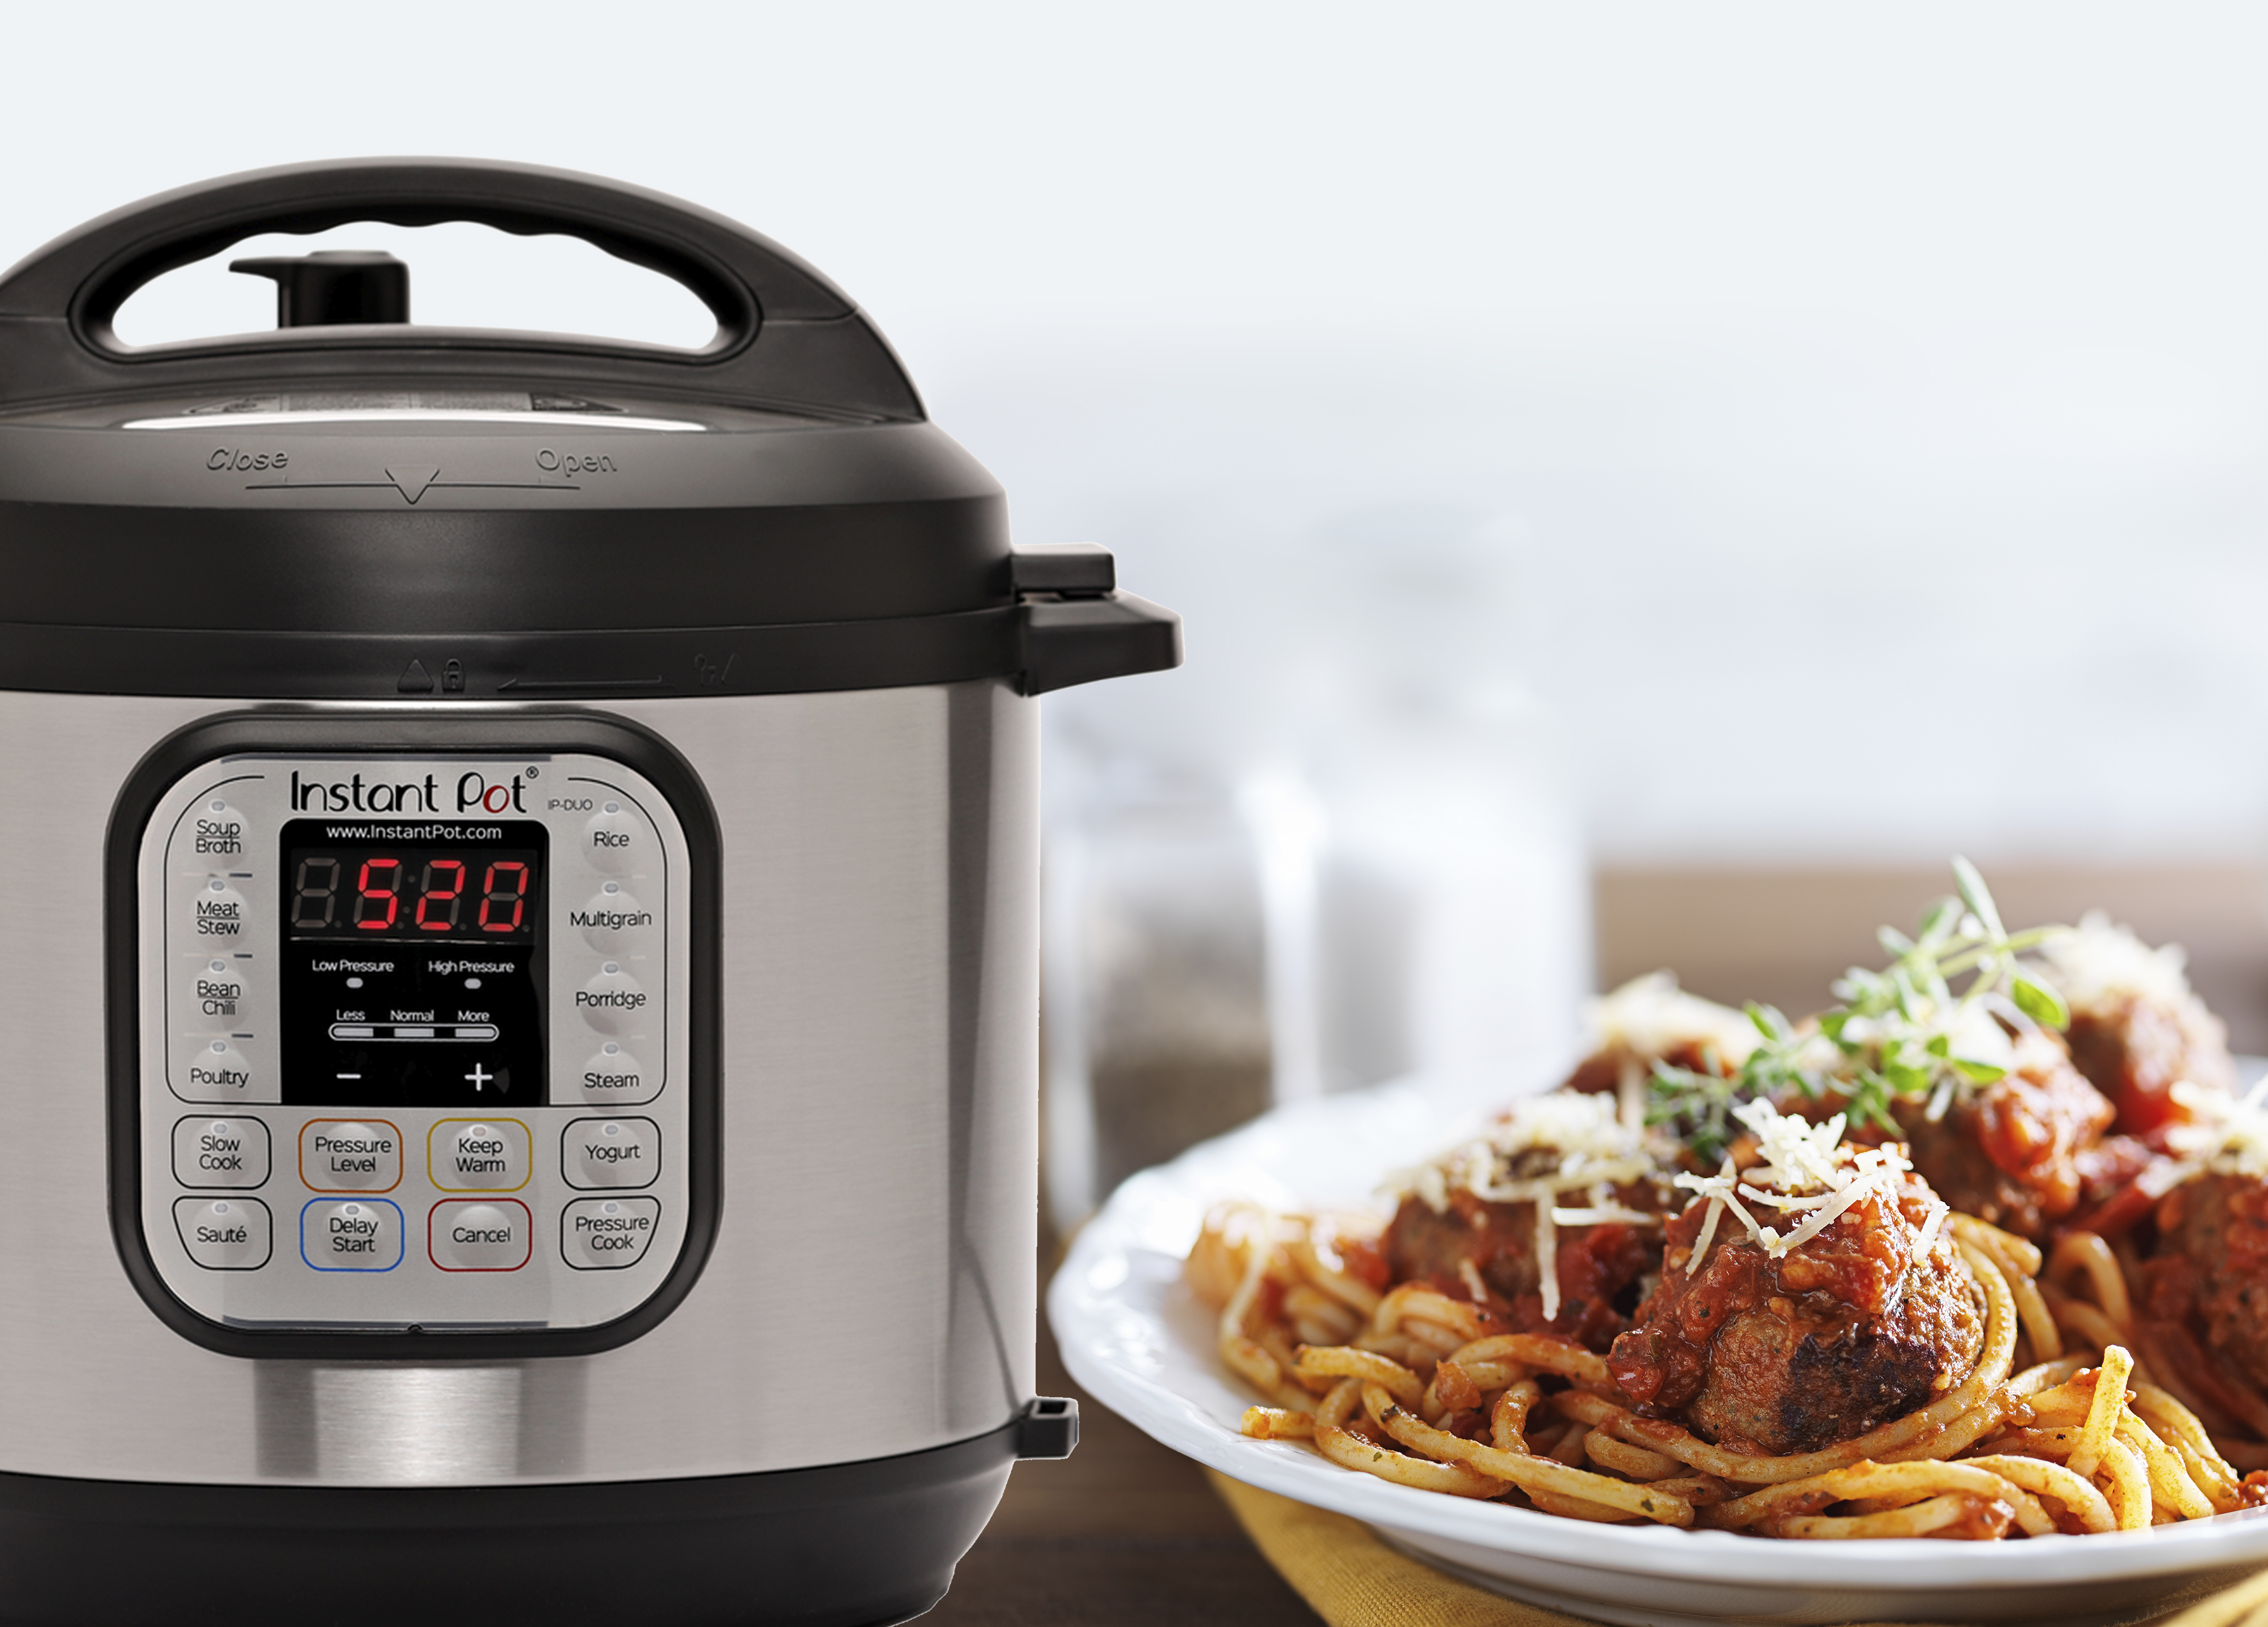 The Instant Pot has arrived!